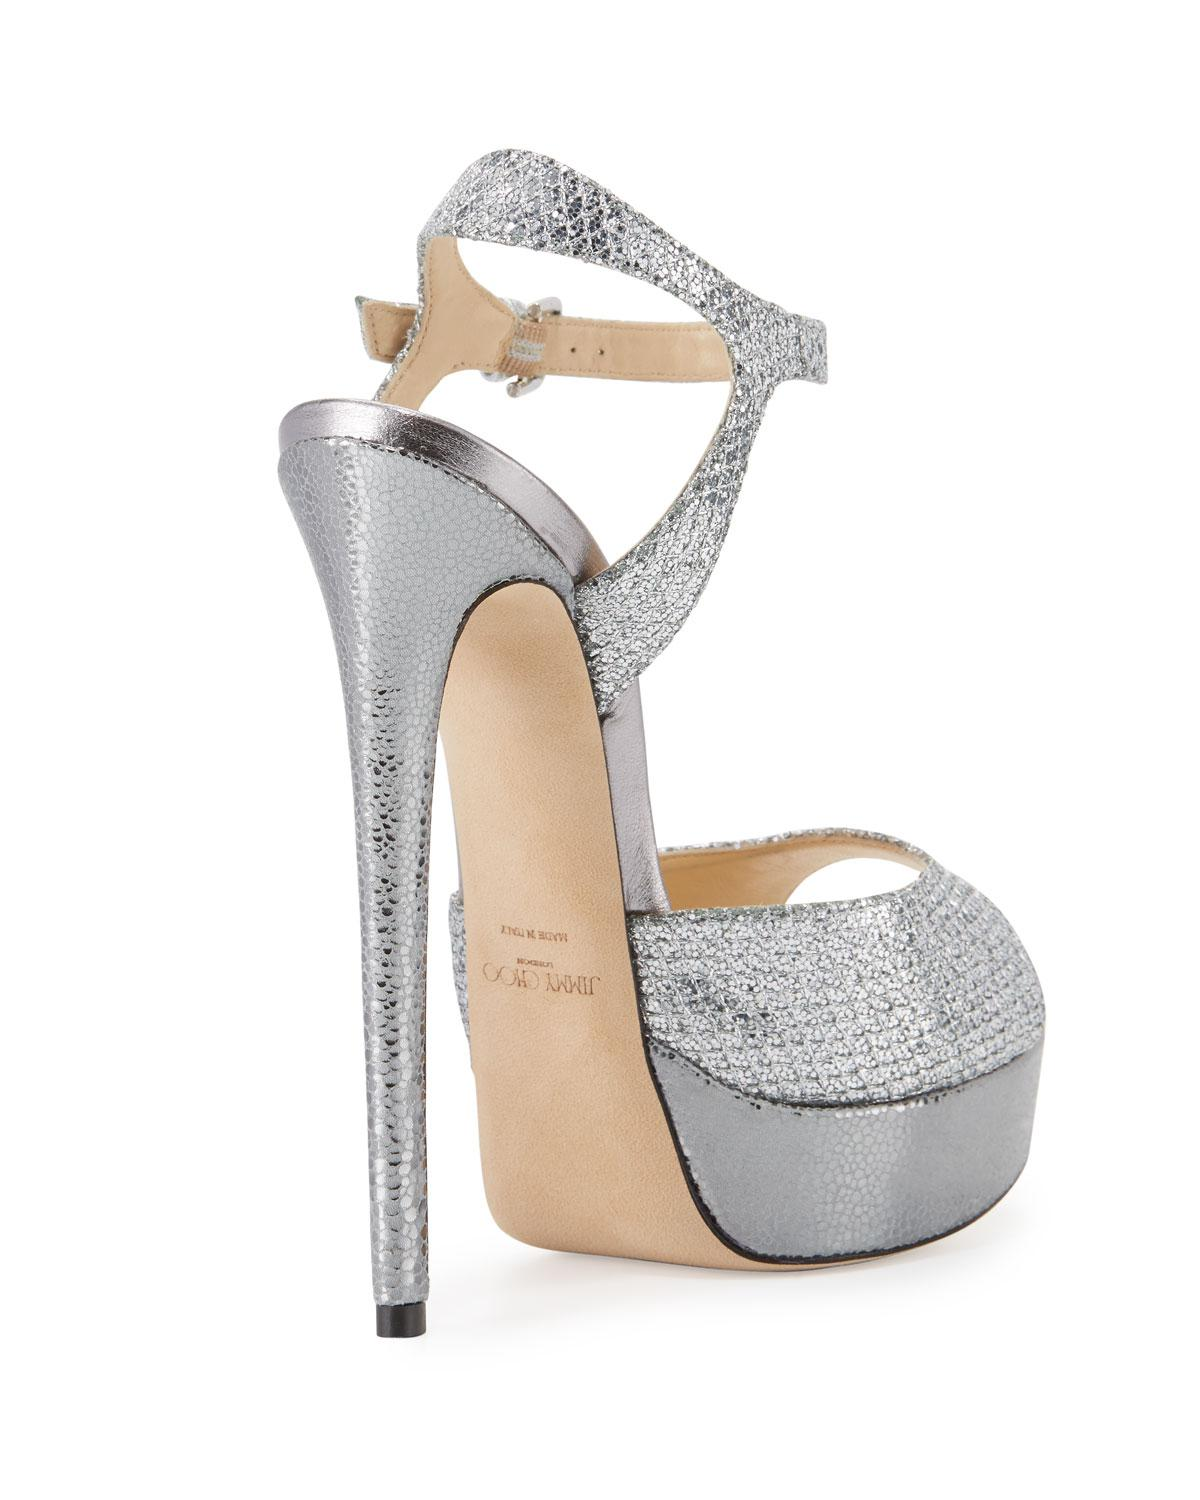 2f55168f78f Gallery. Previously sold at  Bergdorf Goodman · Women s Jimmy Choo Glitter  ...